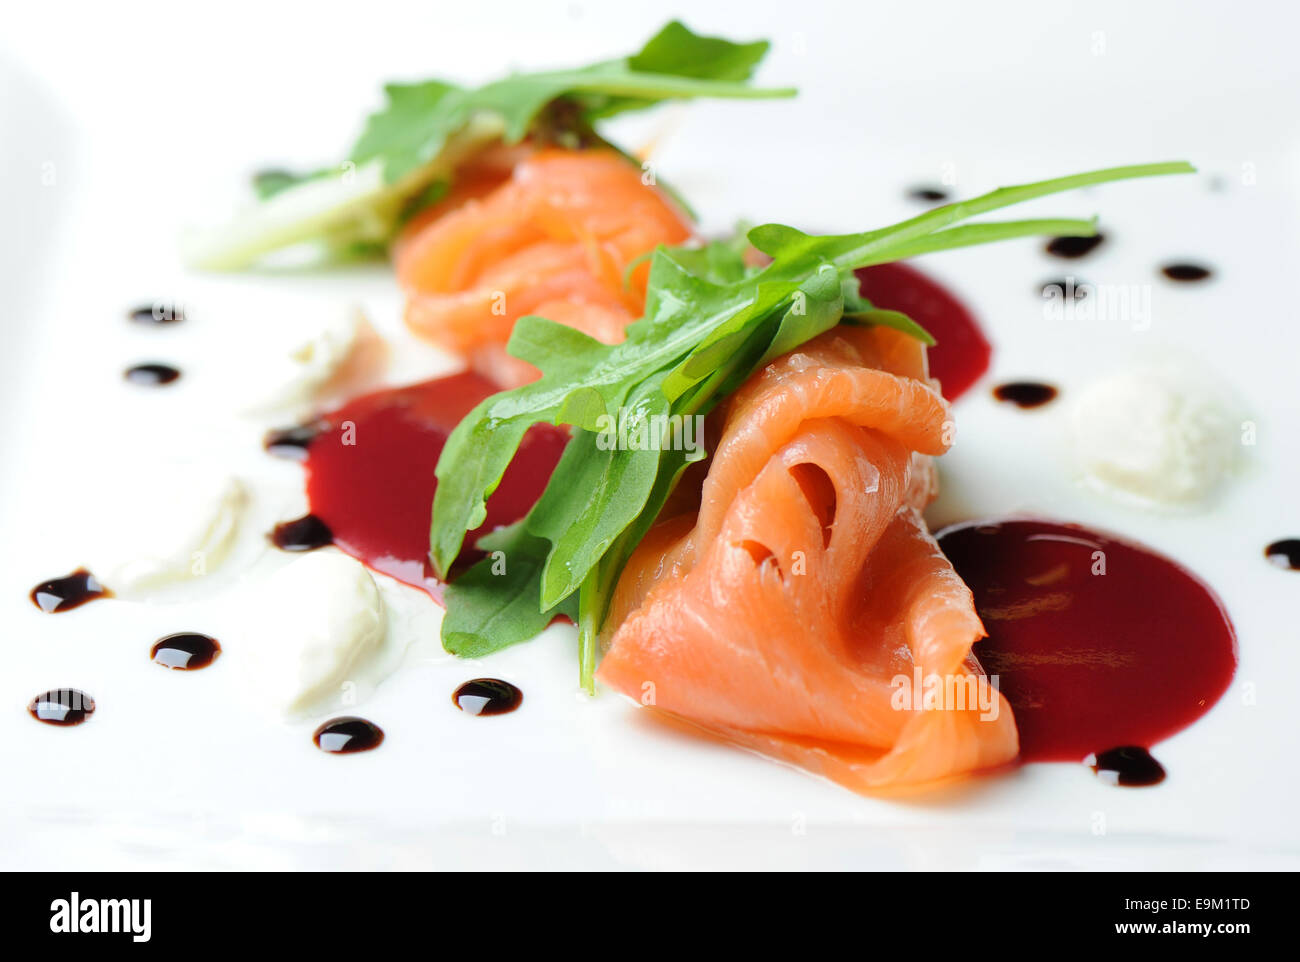 Smoked salmon gravlax served as a starter on a white plate with chilli sauce. - Stock Image